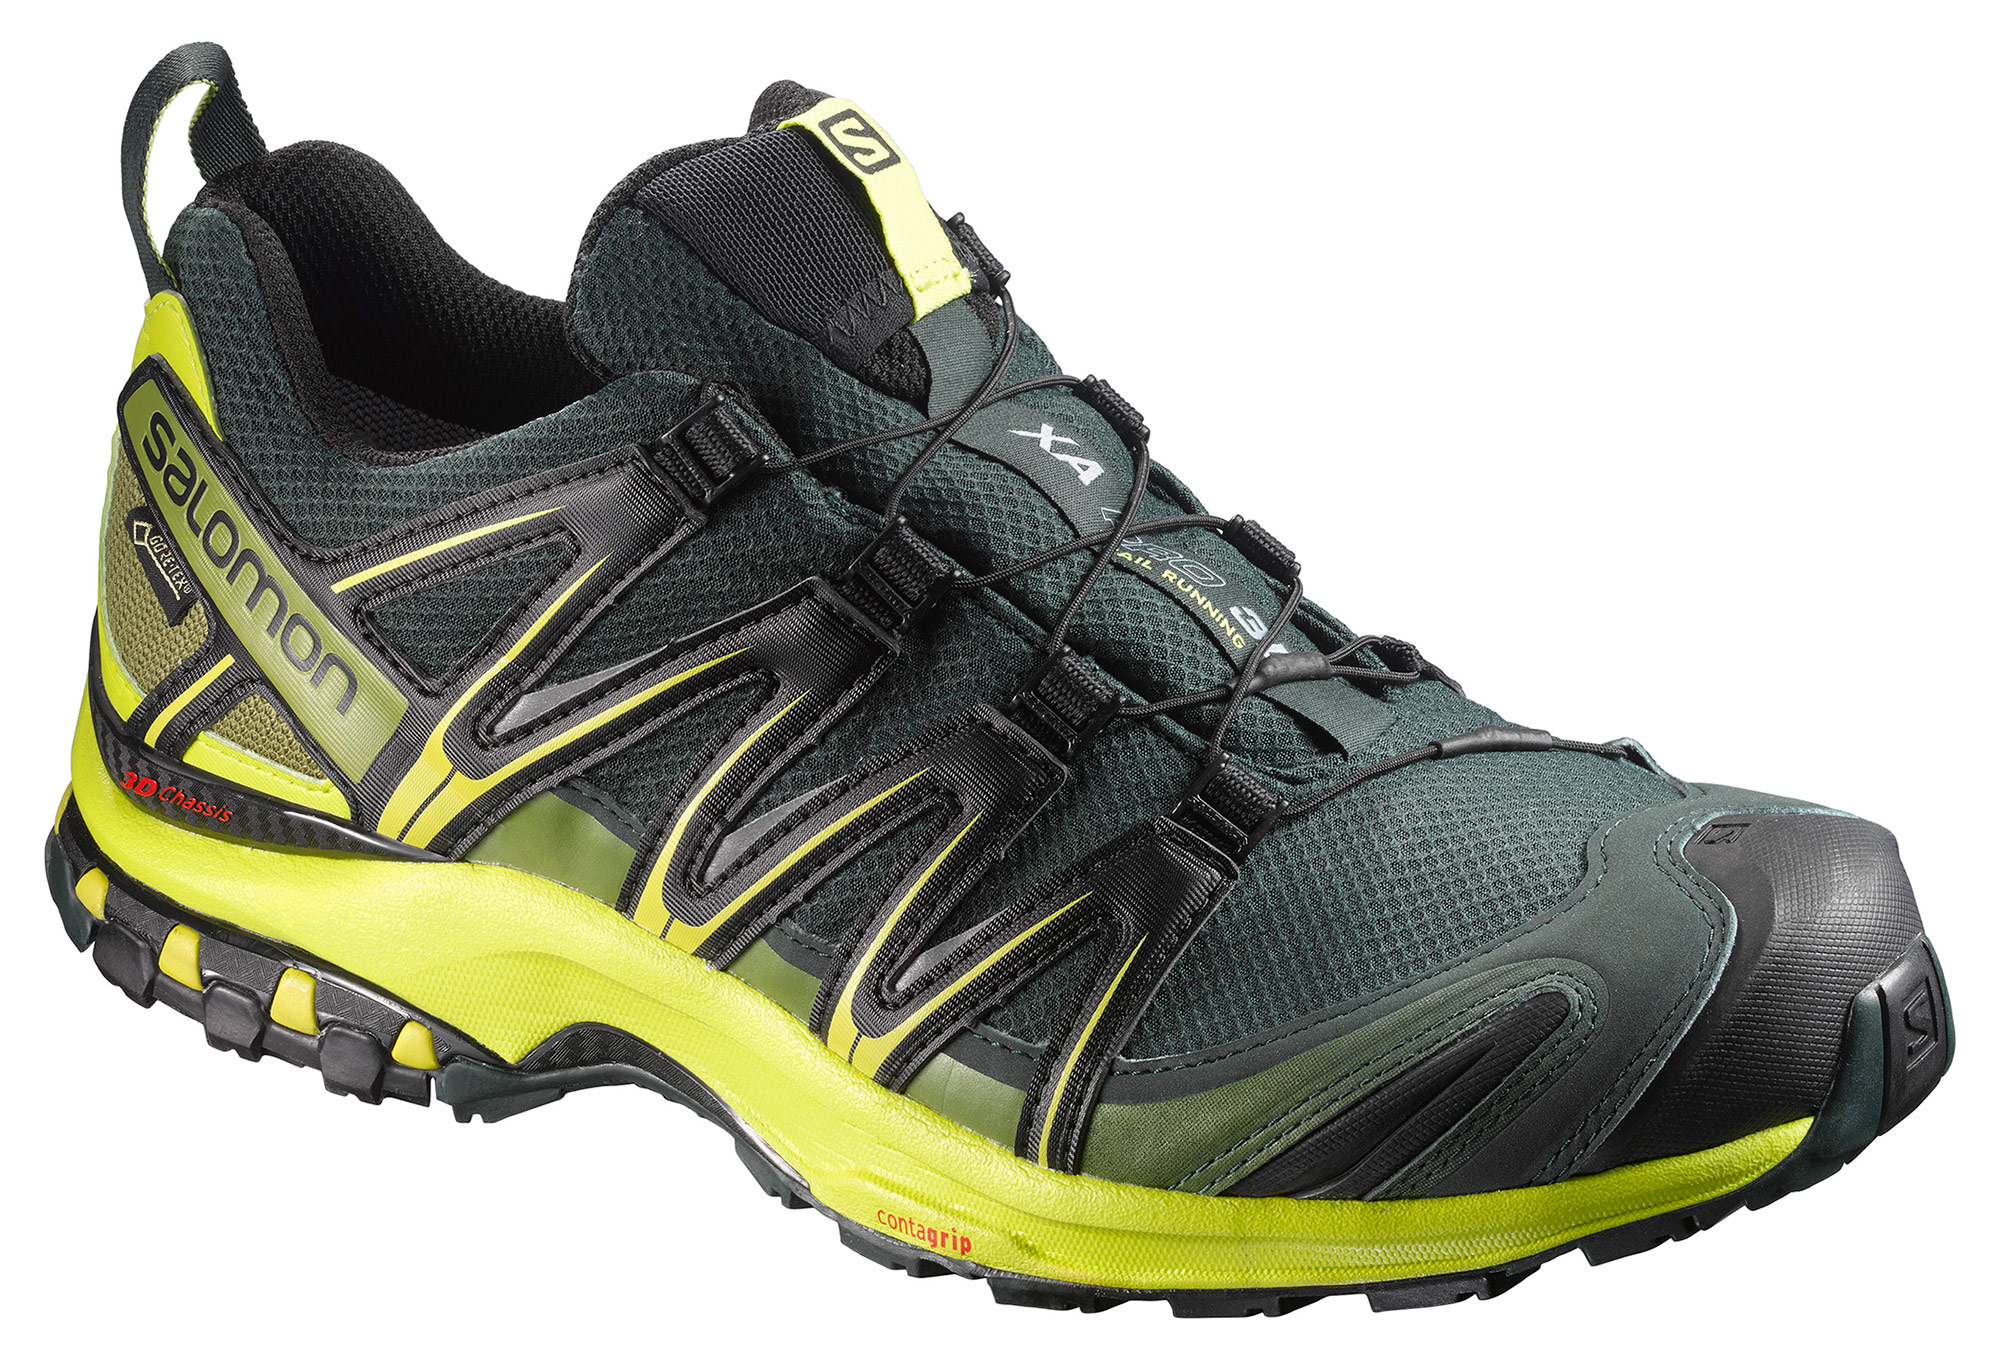 Salomon Xa Pro 3d Gtx® Destockage Chaussure Trail Salomon